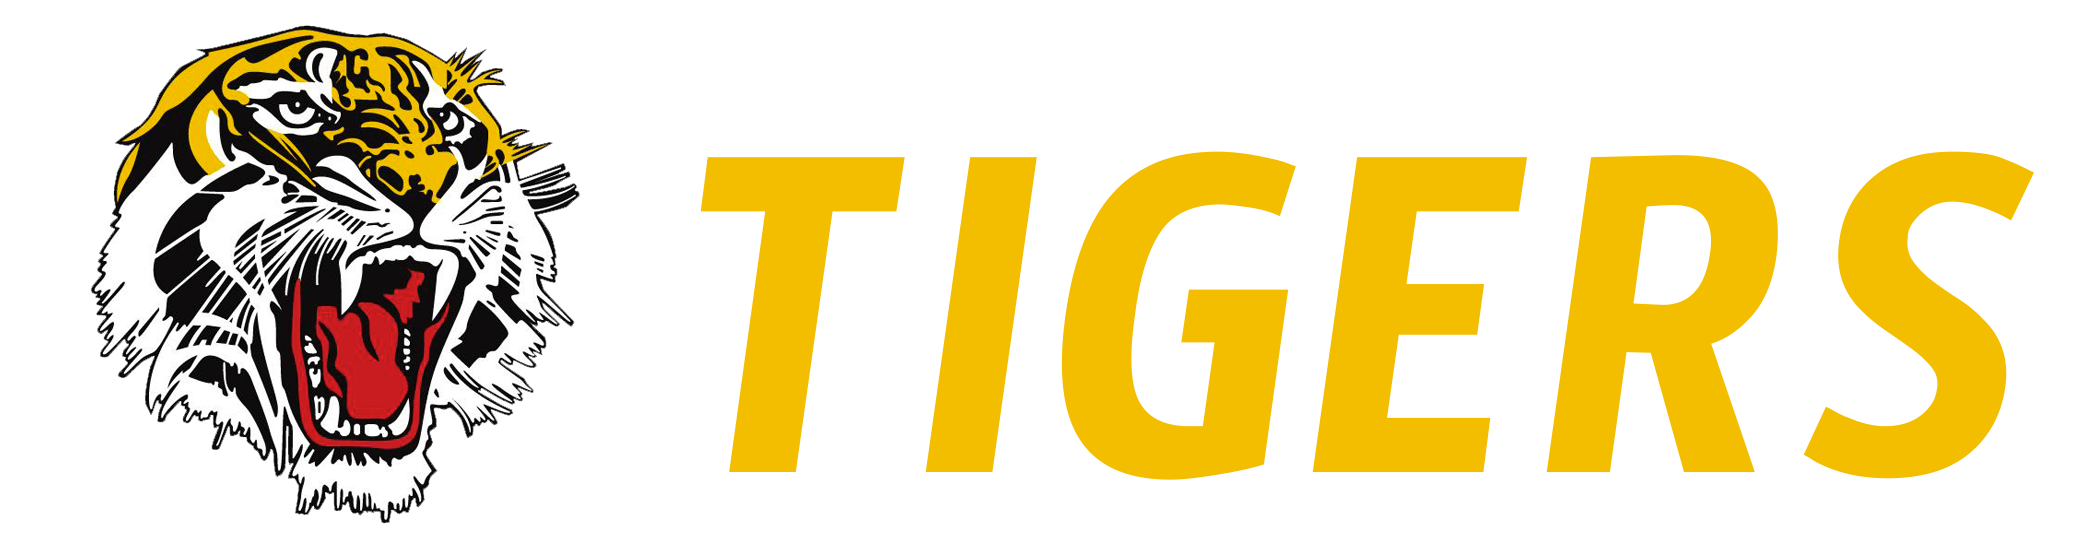 Bomaderry Tigers Football Club